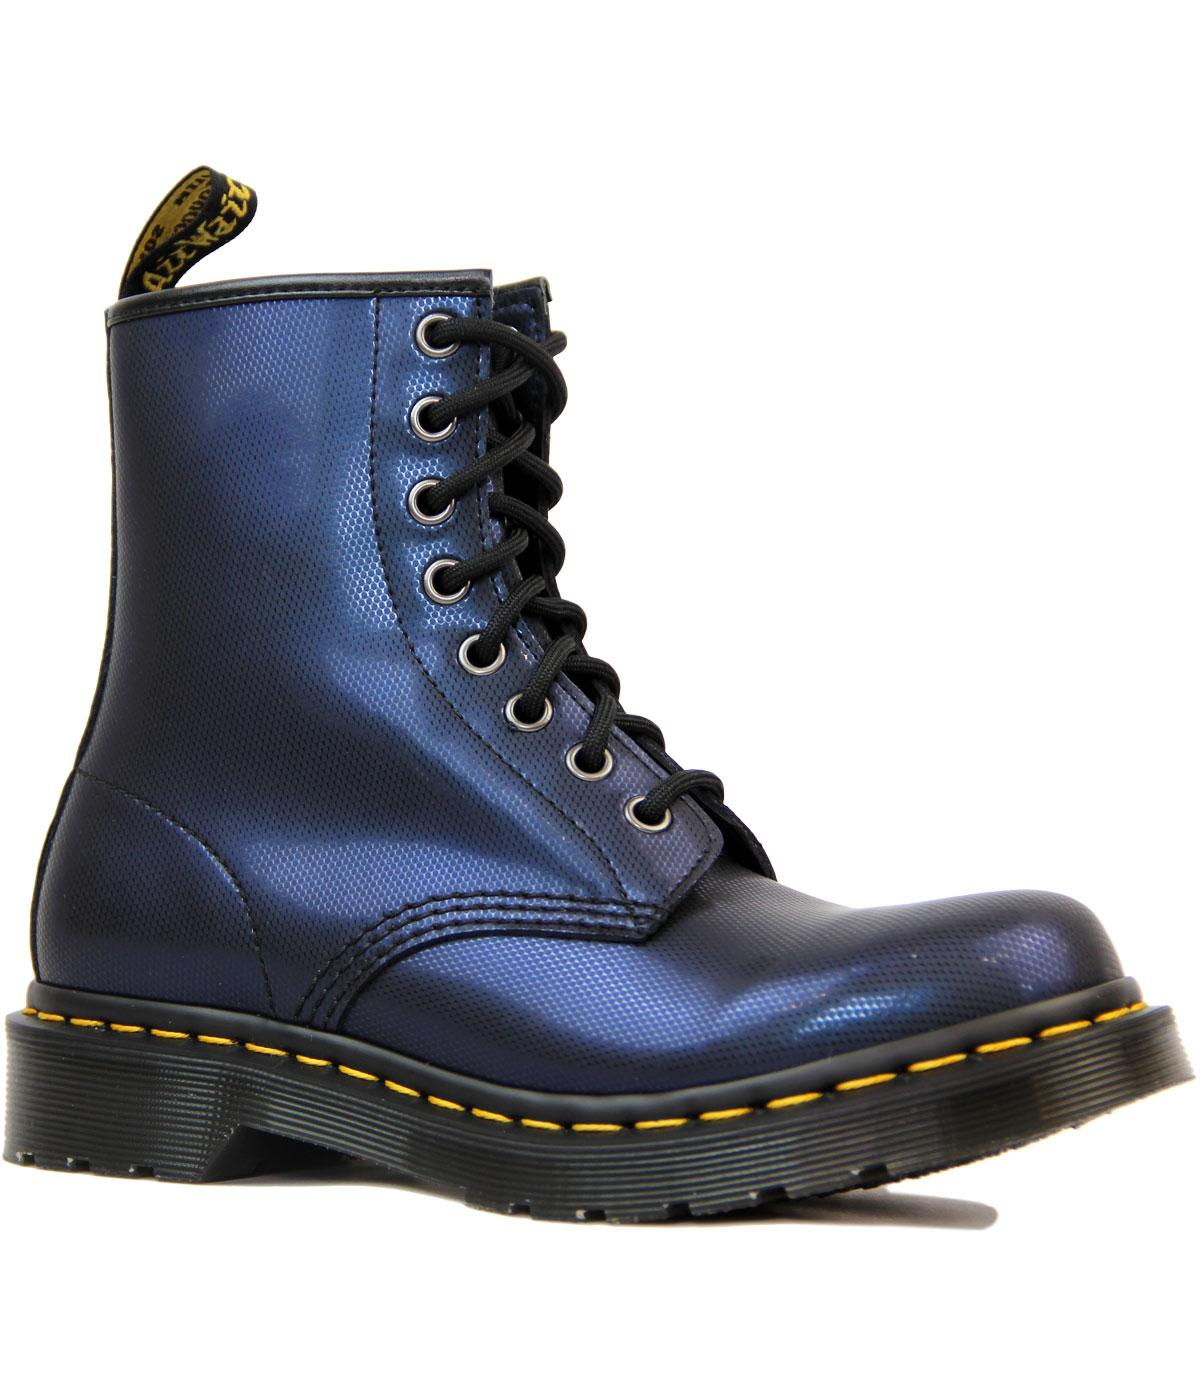 1460 DR MARTENS Retro Mod Two Tone Metallic Boots